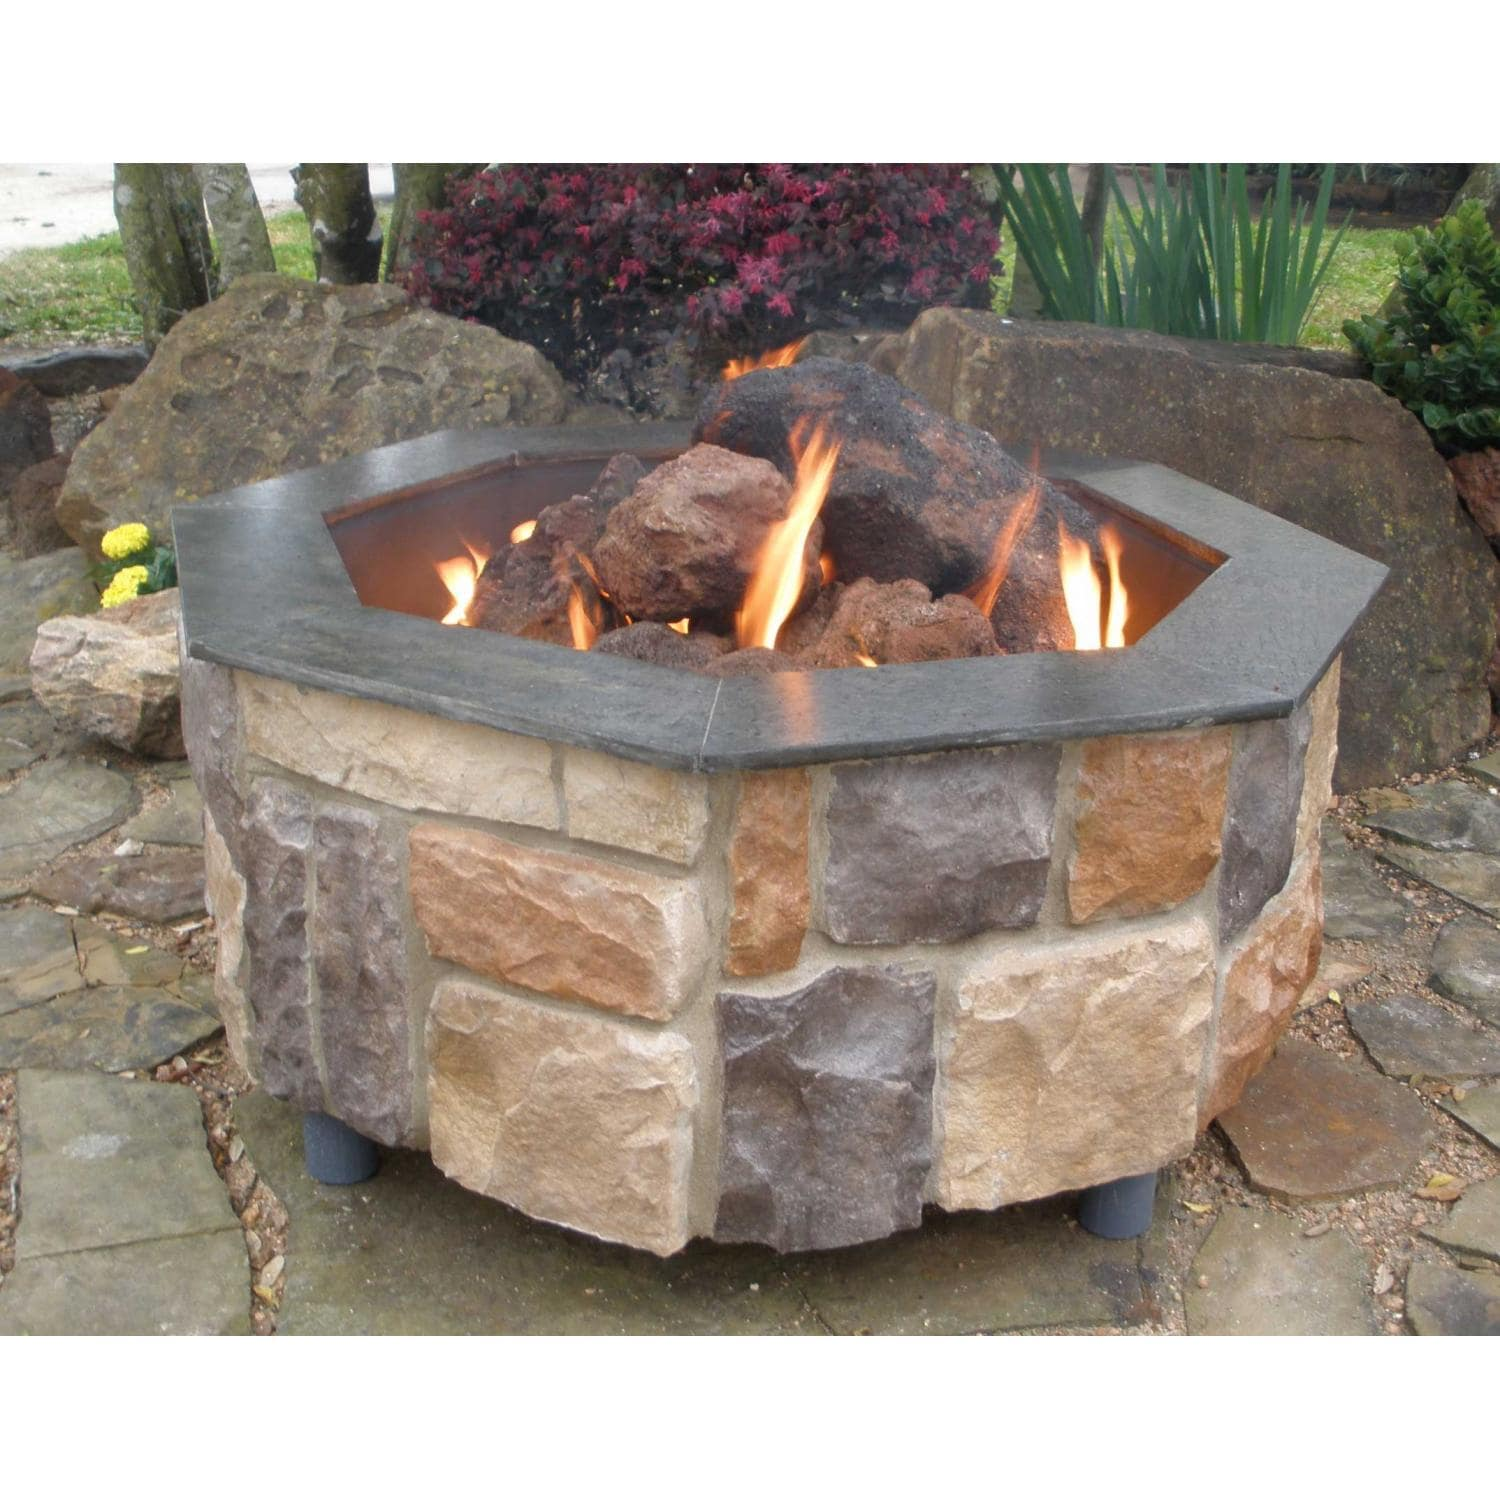 FireScapes Smooth Ledge Octagonal Natural Gas Fire Pit